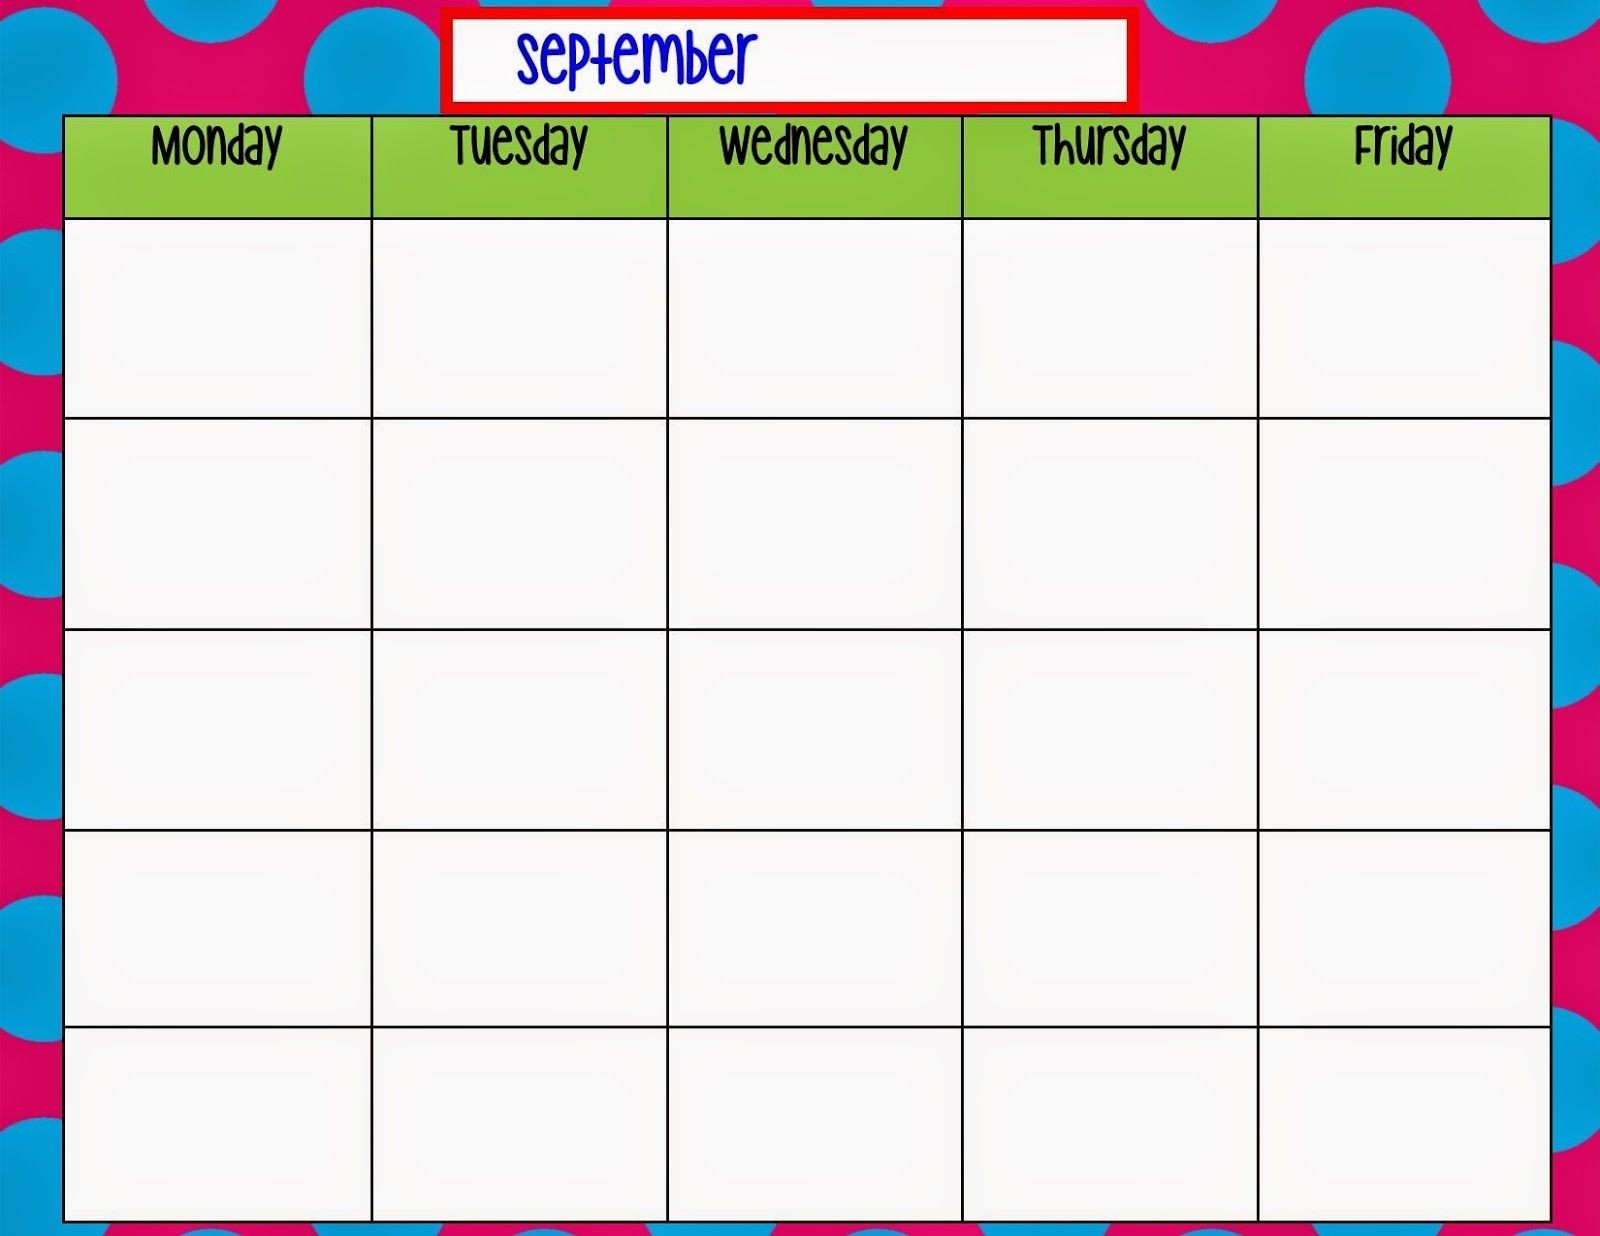 Monday Through Friday Calendar Template | Preschool | Weekly-Template For Monday To Friday